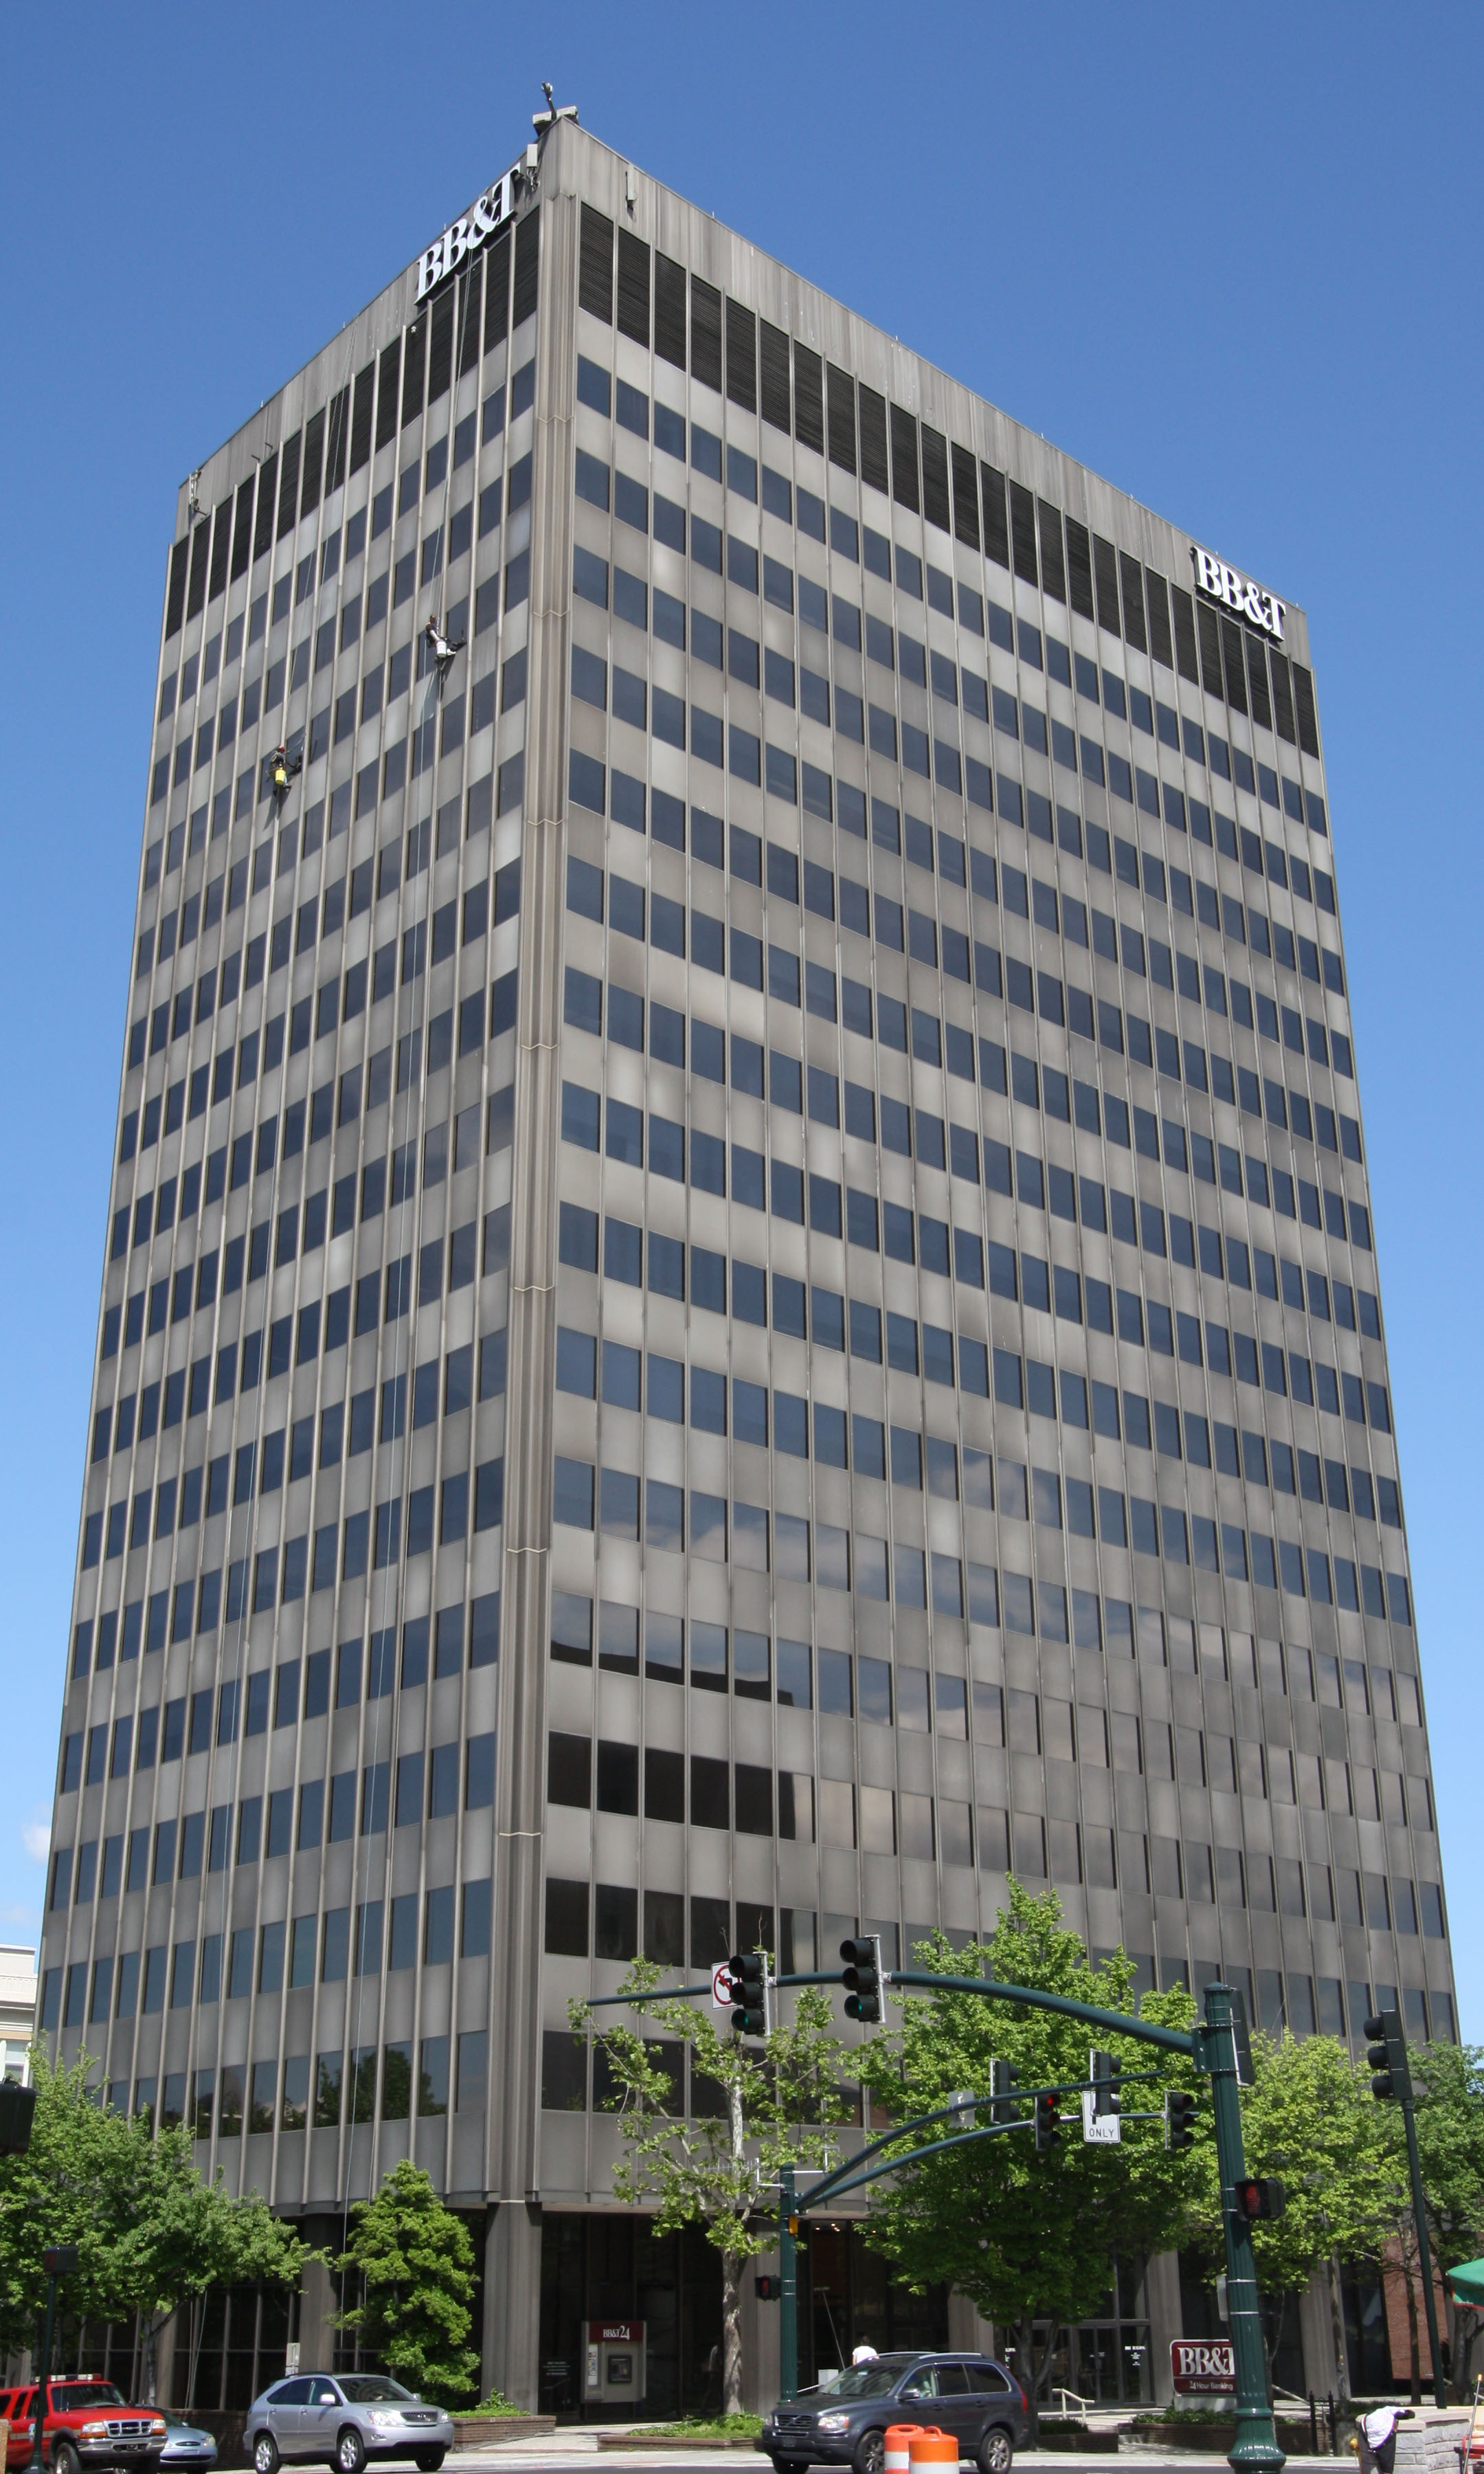 BB&T Building - Asheville, NC - Built in 1965 - 18 Stories - International Style - Commercial Office Use